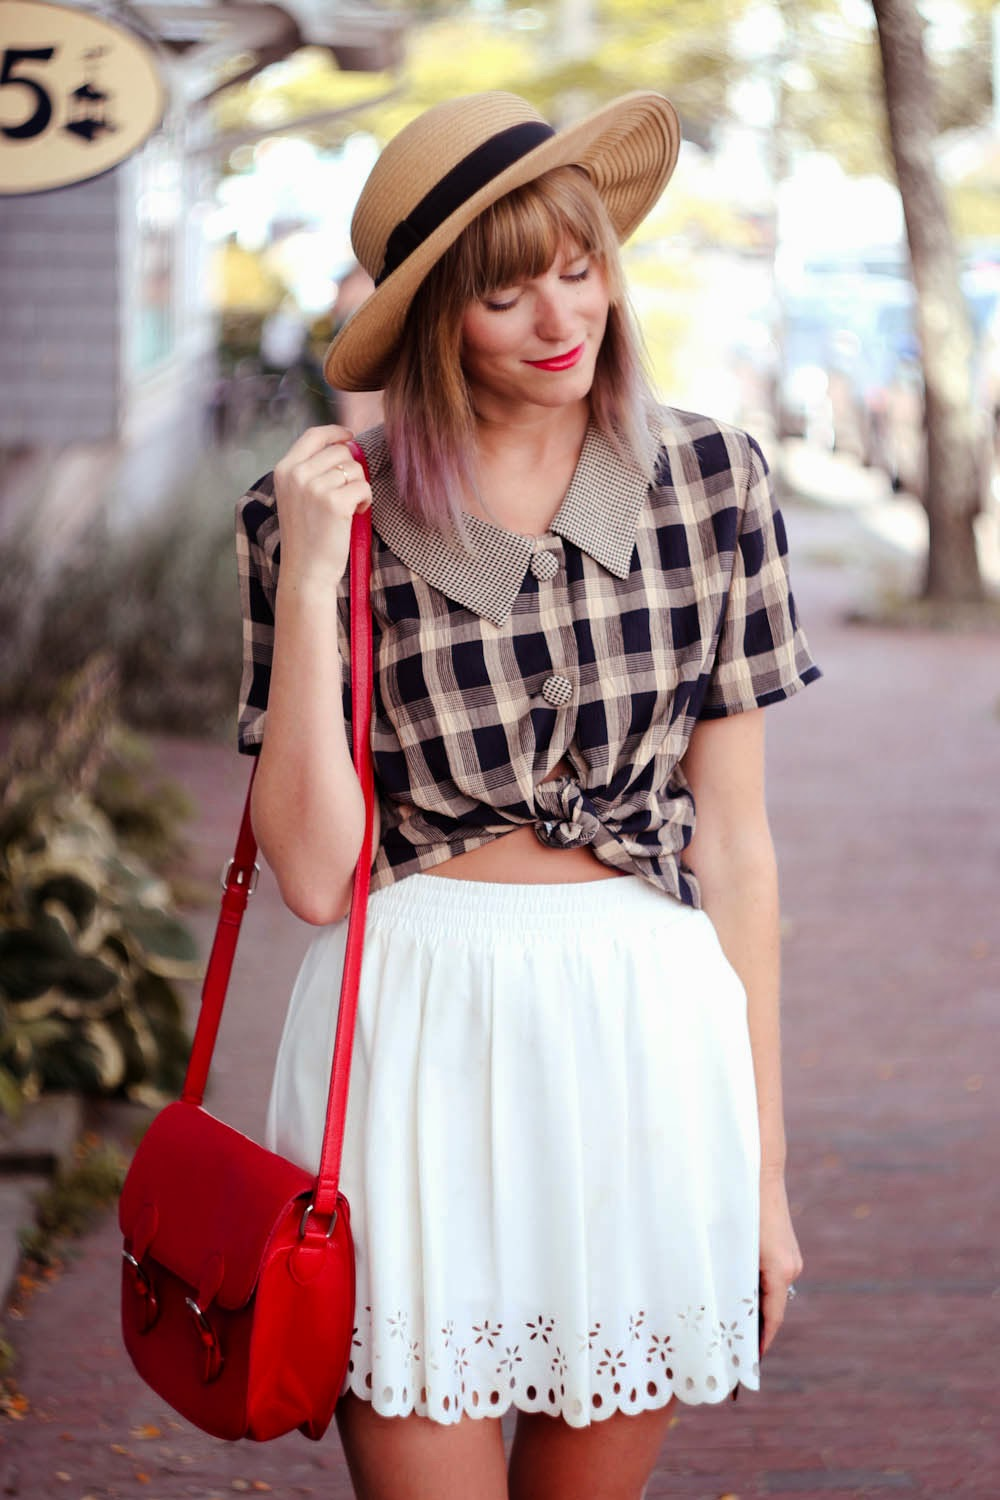 red forever 21 bag, vintage collar blouse, marthas vineyard, vintage fashion blogger